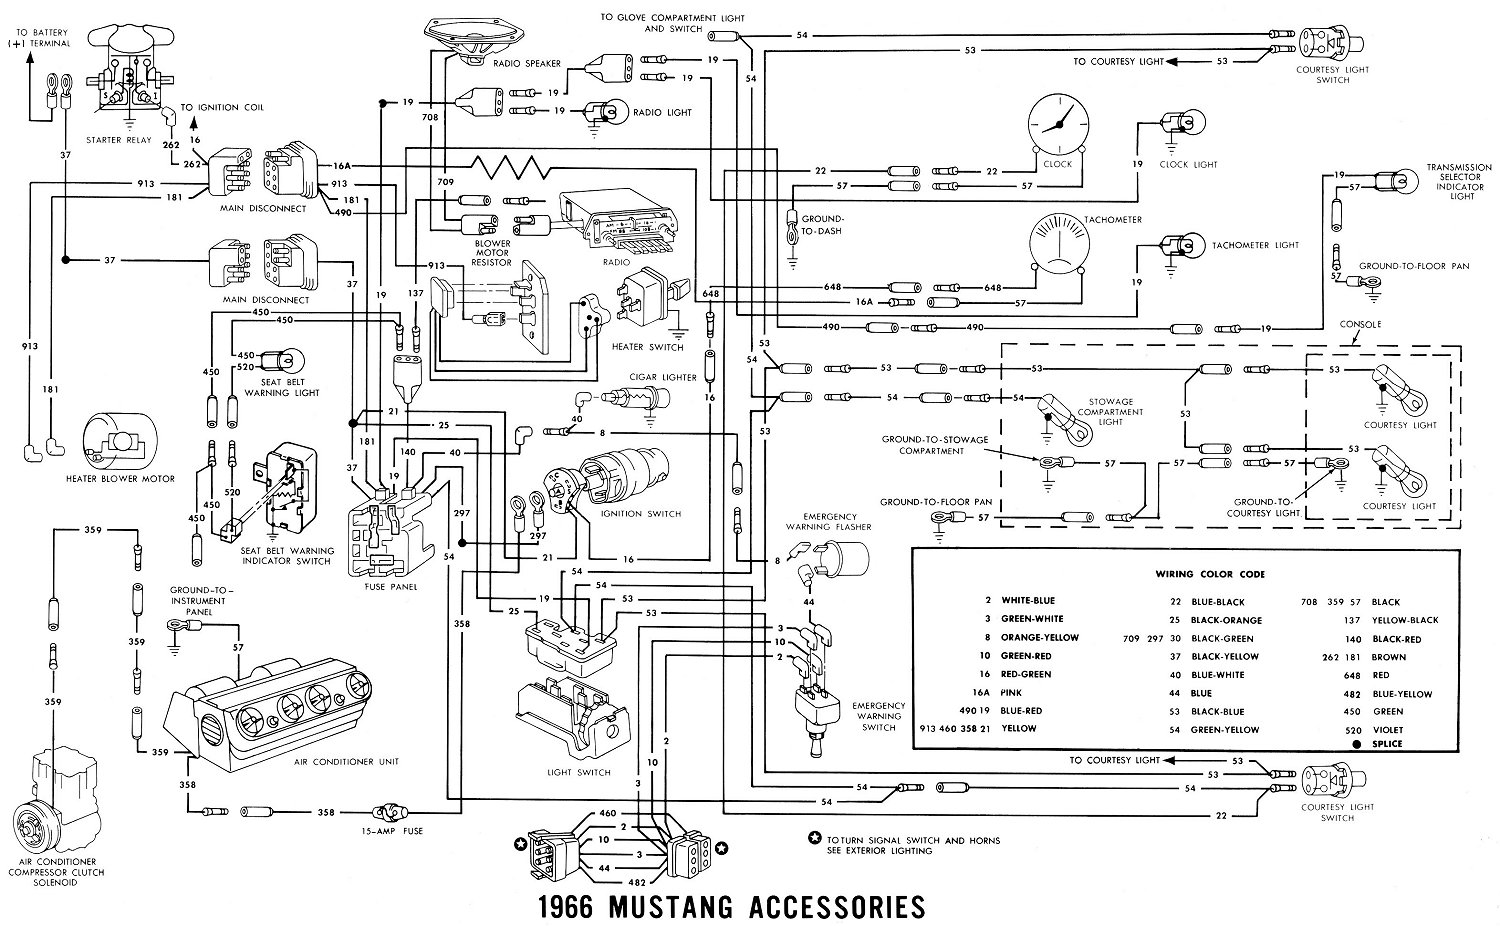 1967 Ford Mustang Alternator Wiring Gauge Diagram Will Be A Harness Concours 390 Xr7 Repro 1966 Detailed Schematics Rh Jvpacks Com